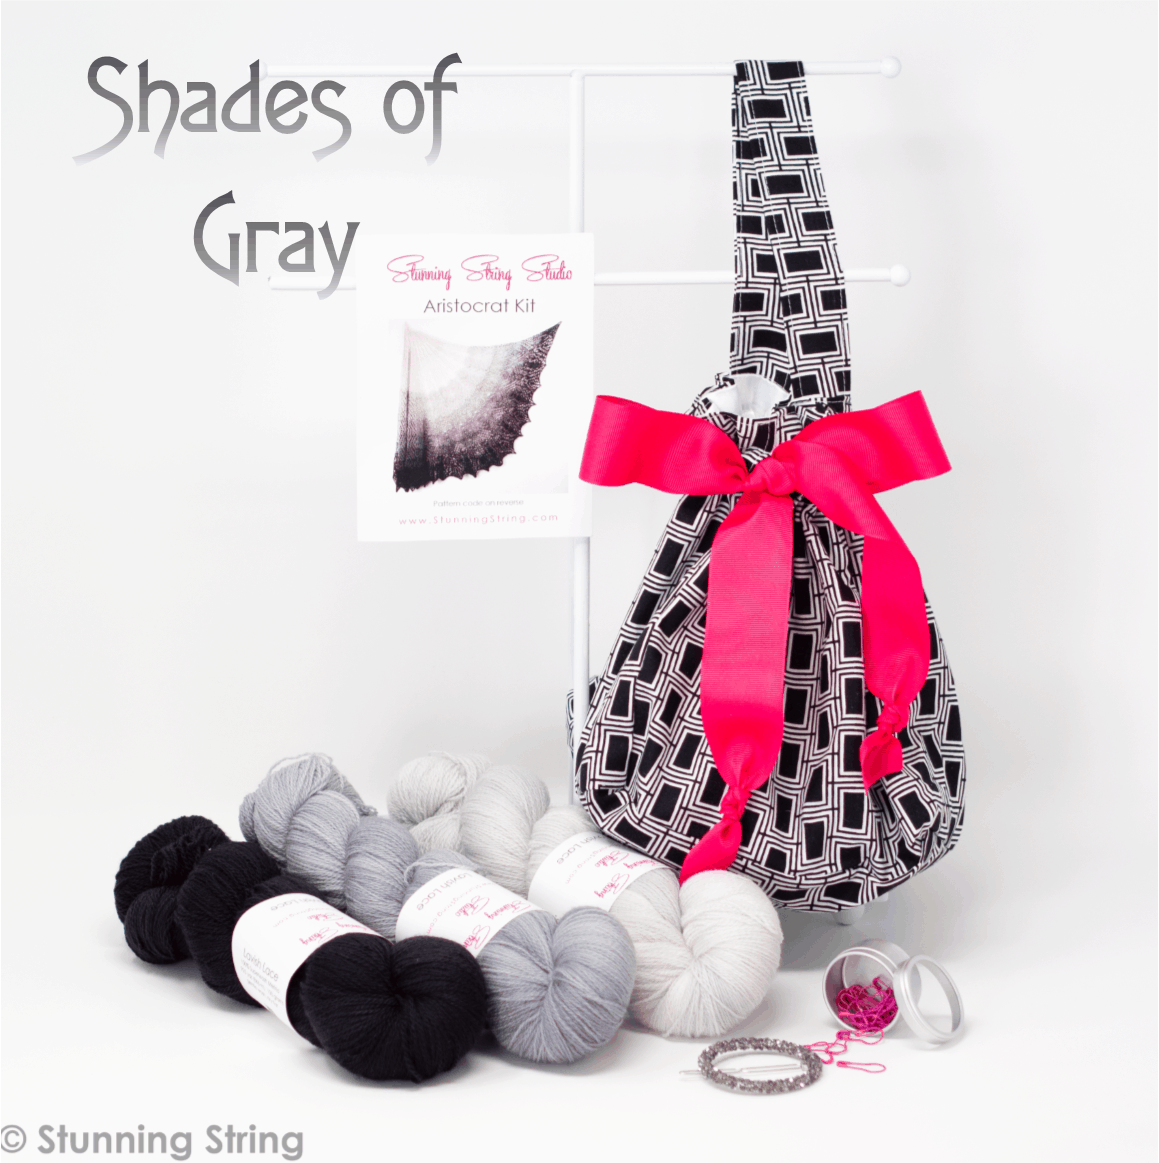 Shades of Gray - Small Batch Kit